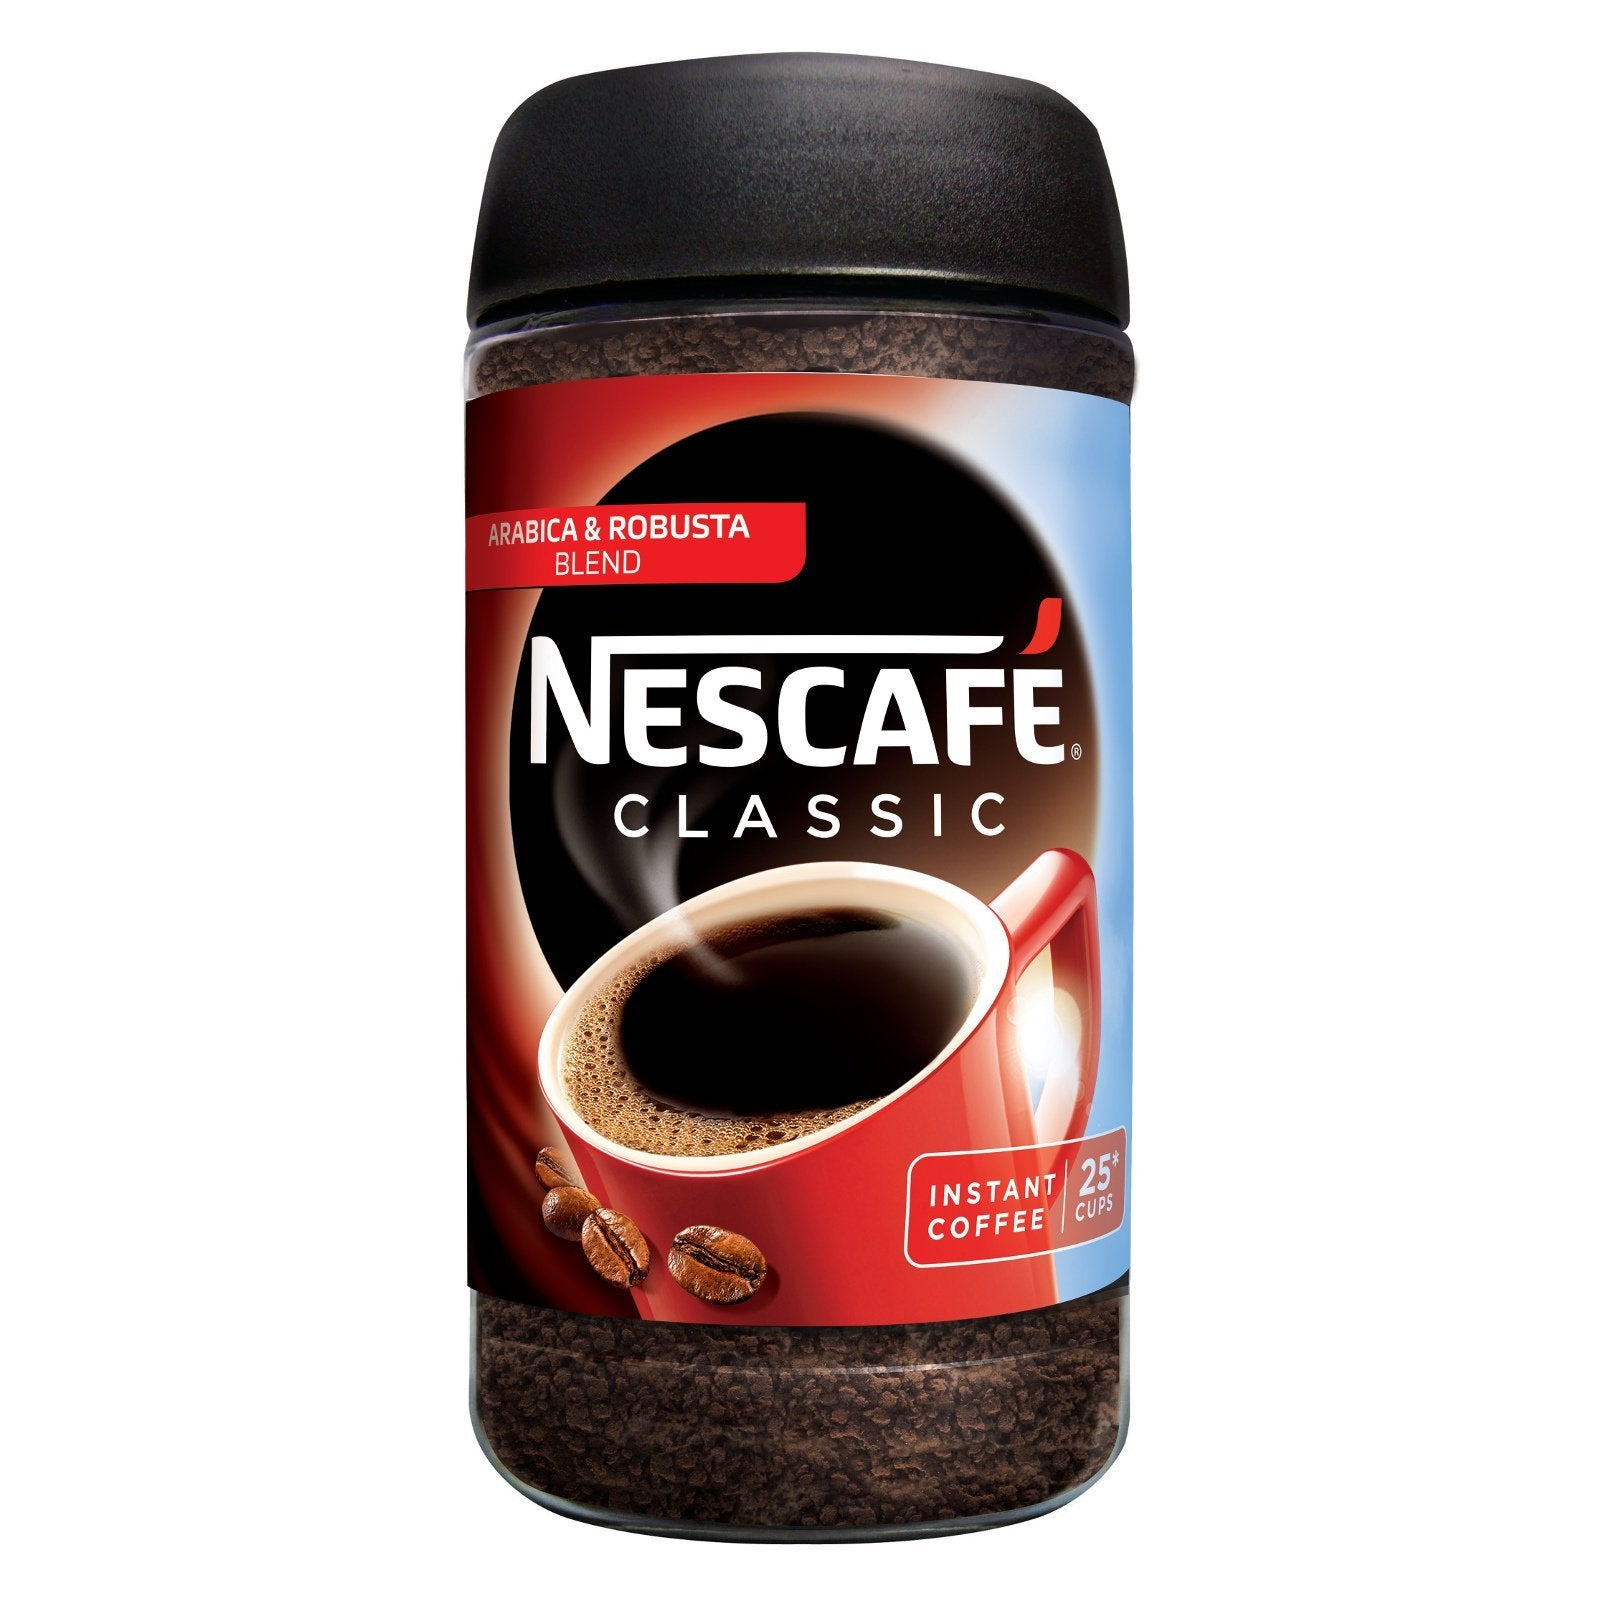 bel>Nescafe Coffee, Instant 60g